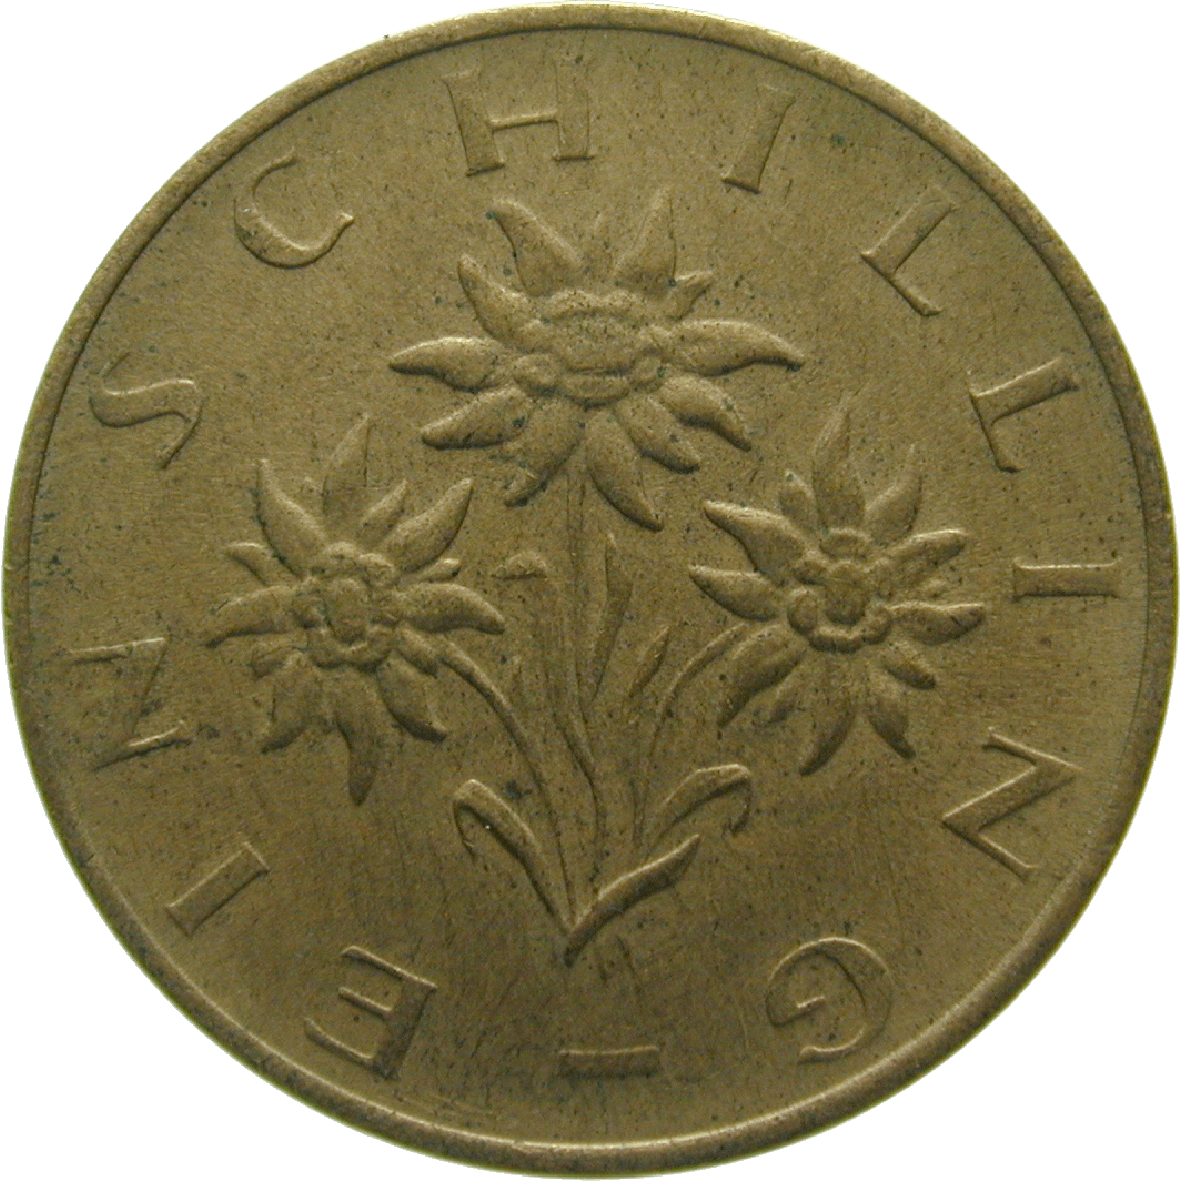 Republic of Austria, 1 Schilling 1974 (reverse)